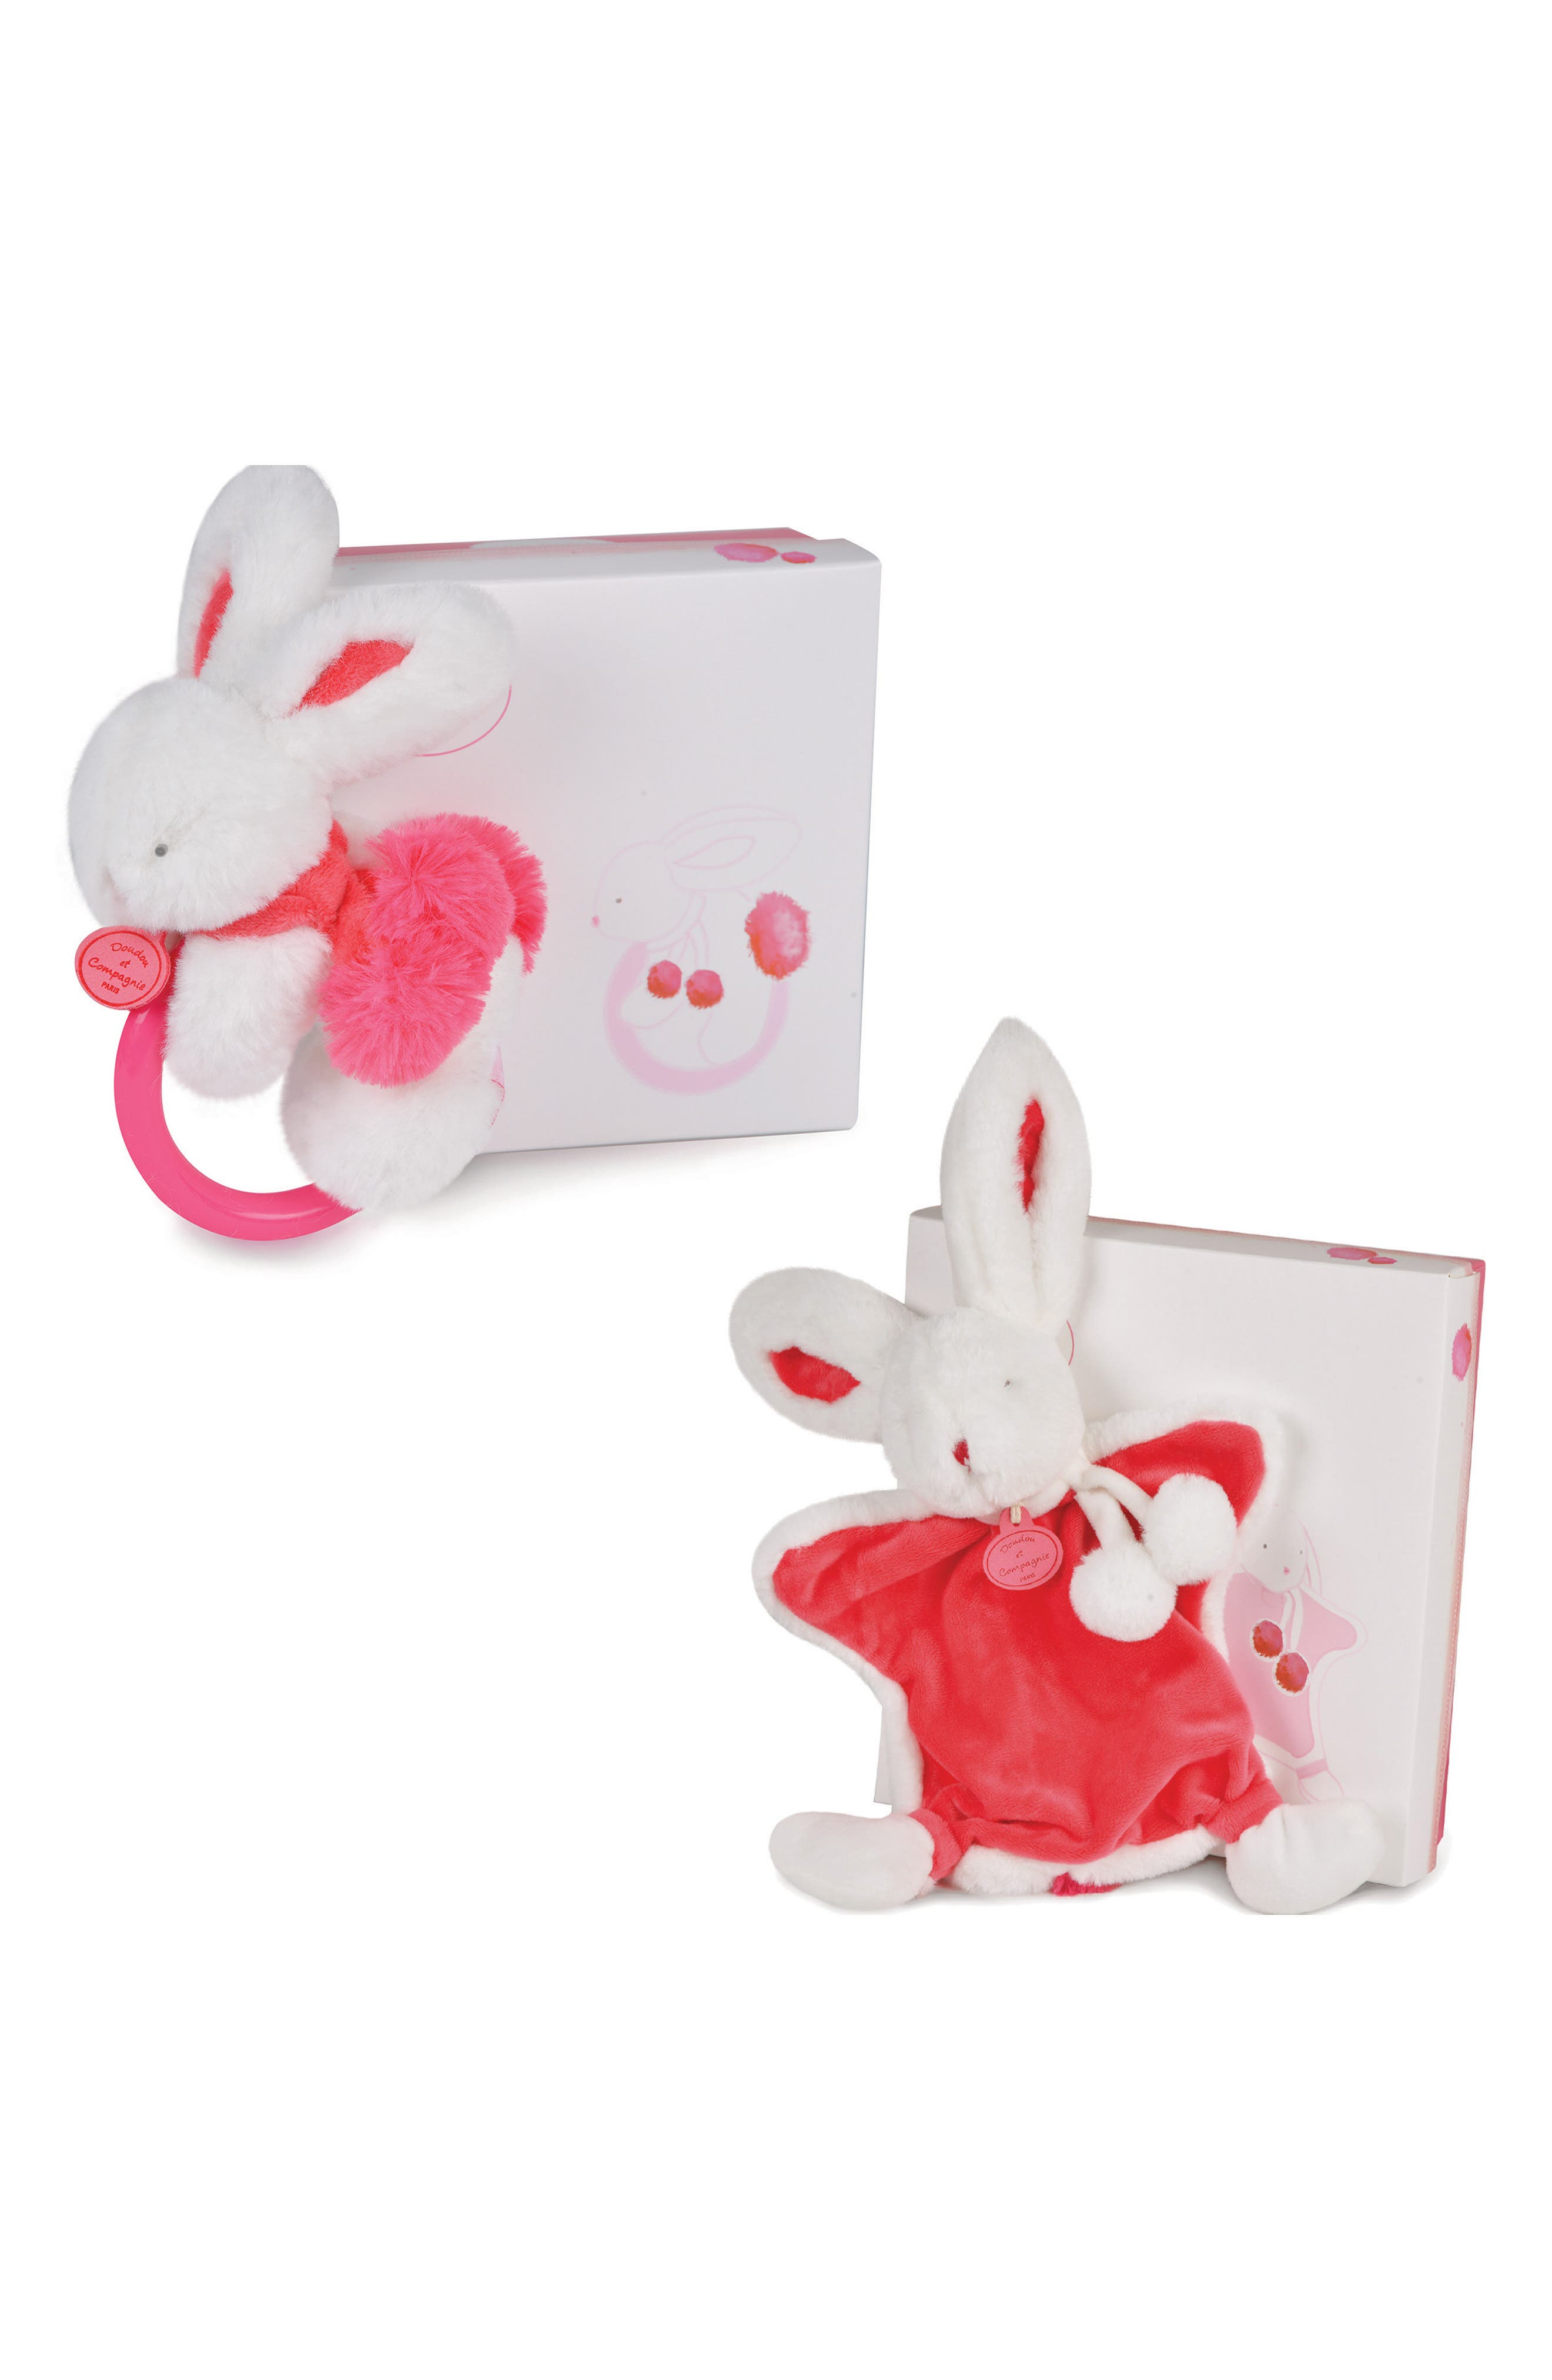 Main Image - Doudou et Compagnie Strawberry Pink Bunny Rattle & Lovie Blanket Gift Set (Baby)